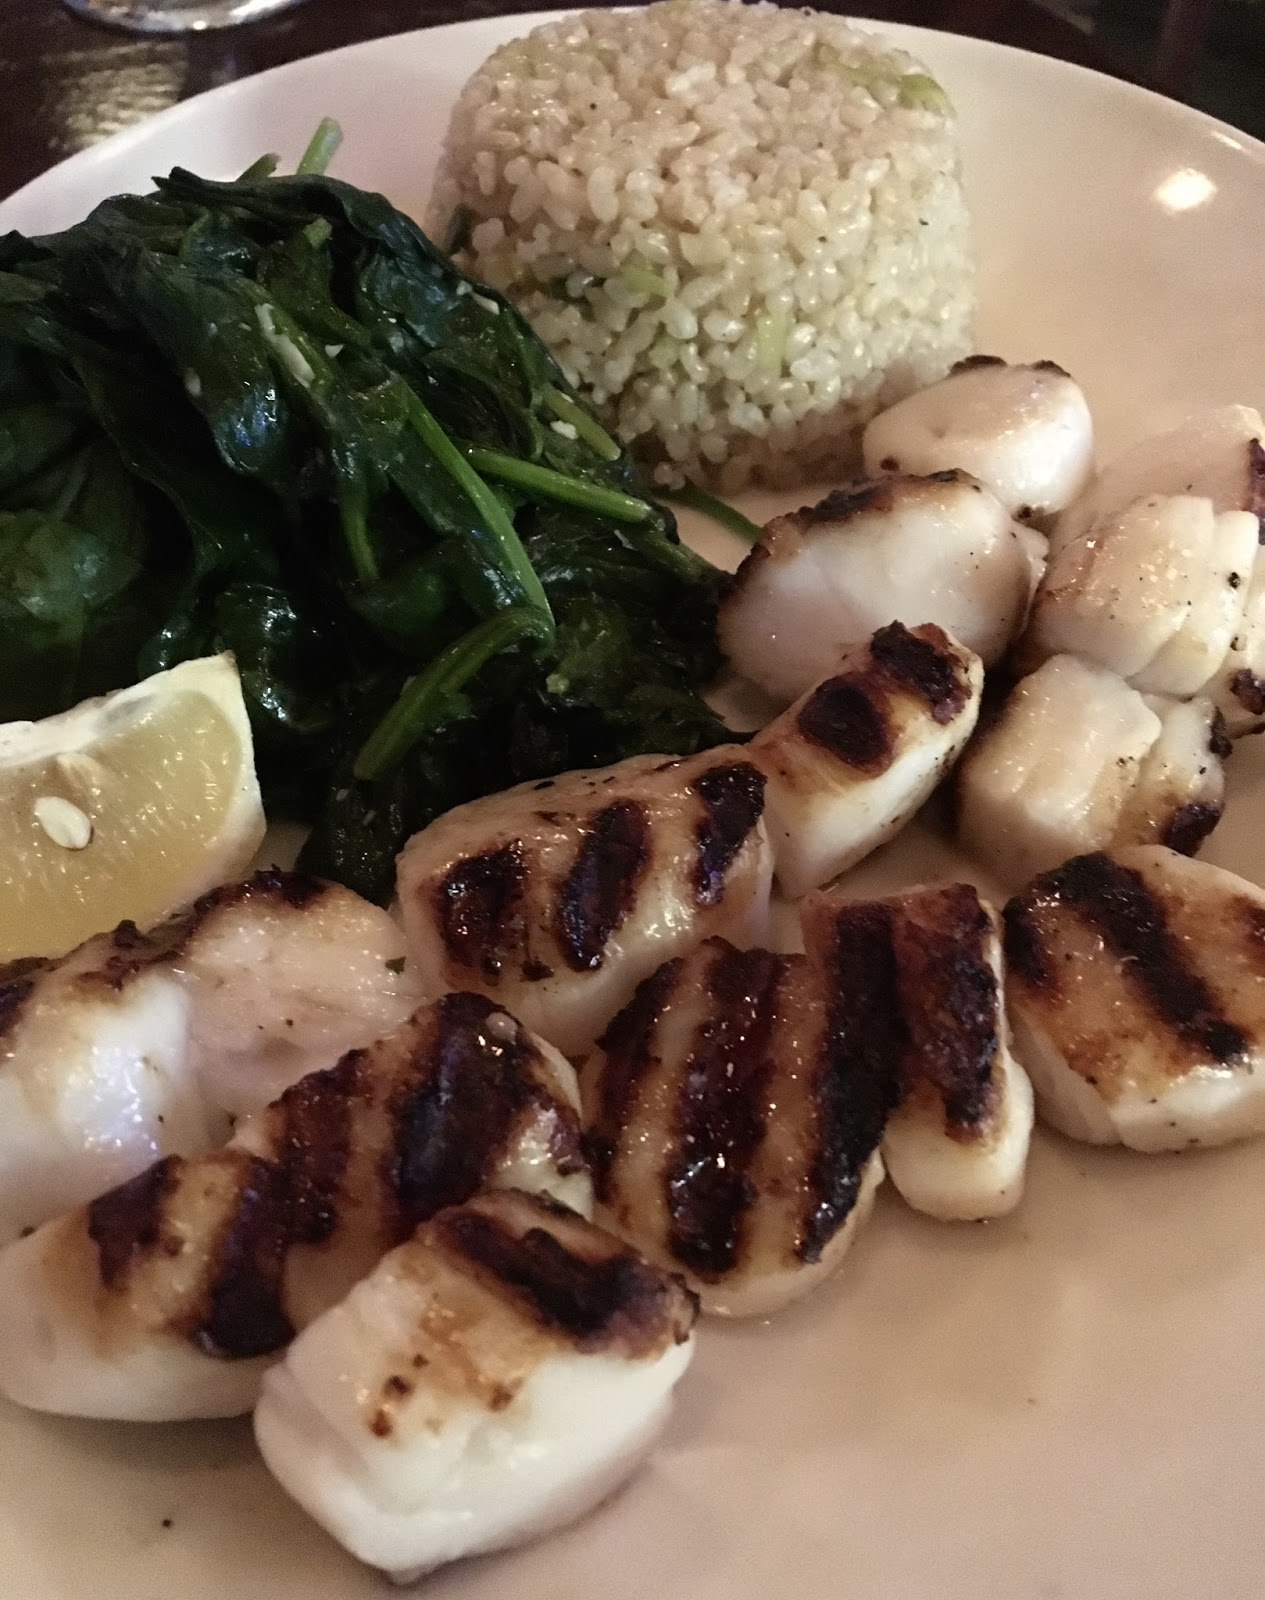 The Gluten & Dairy-Free Review Blog: Legal Sea Foods Review